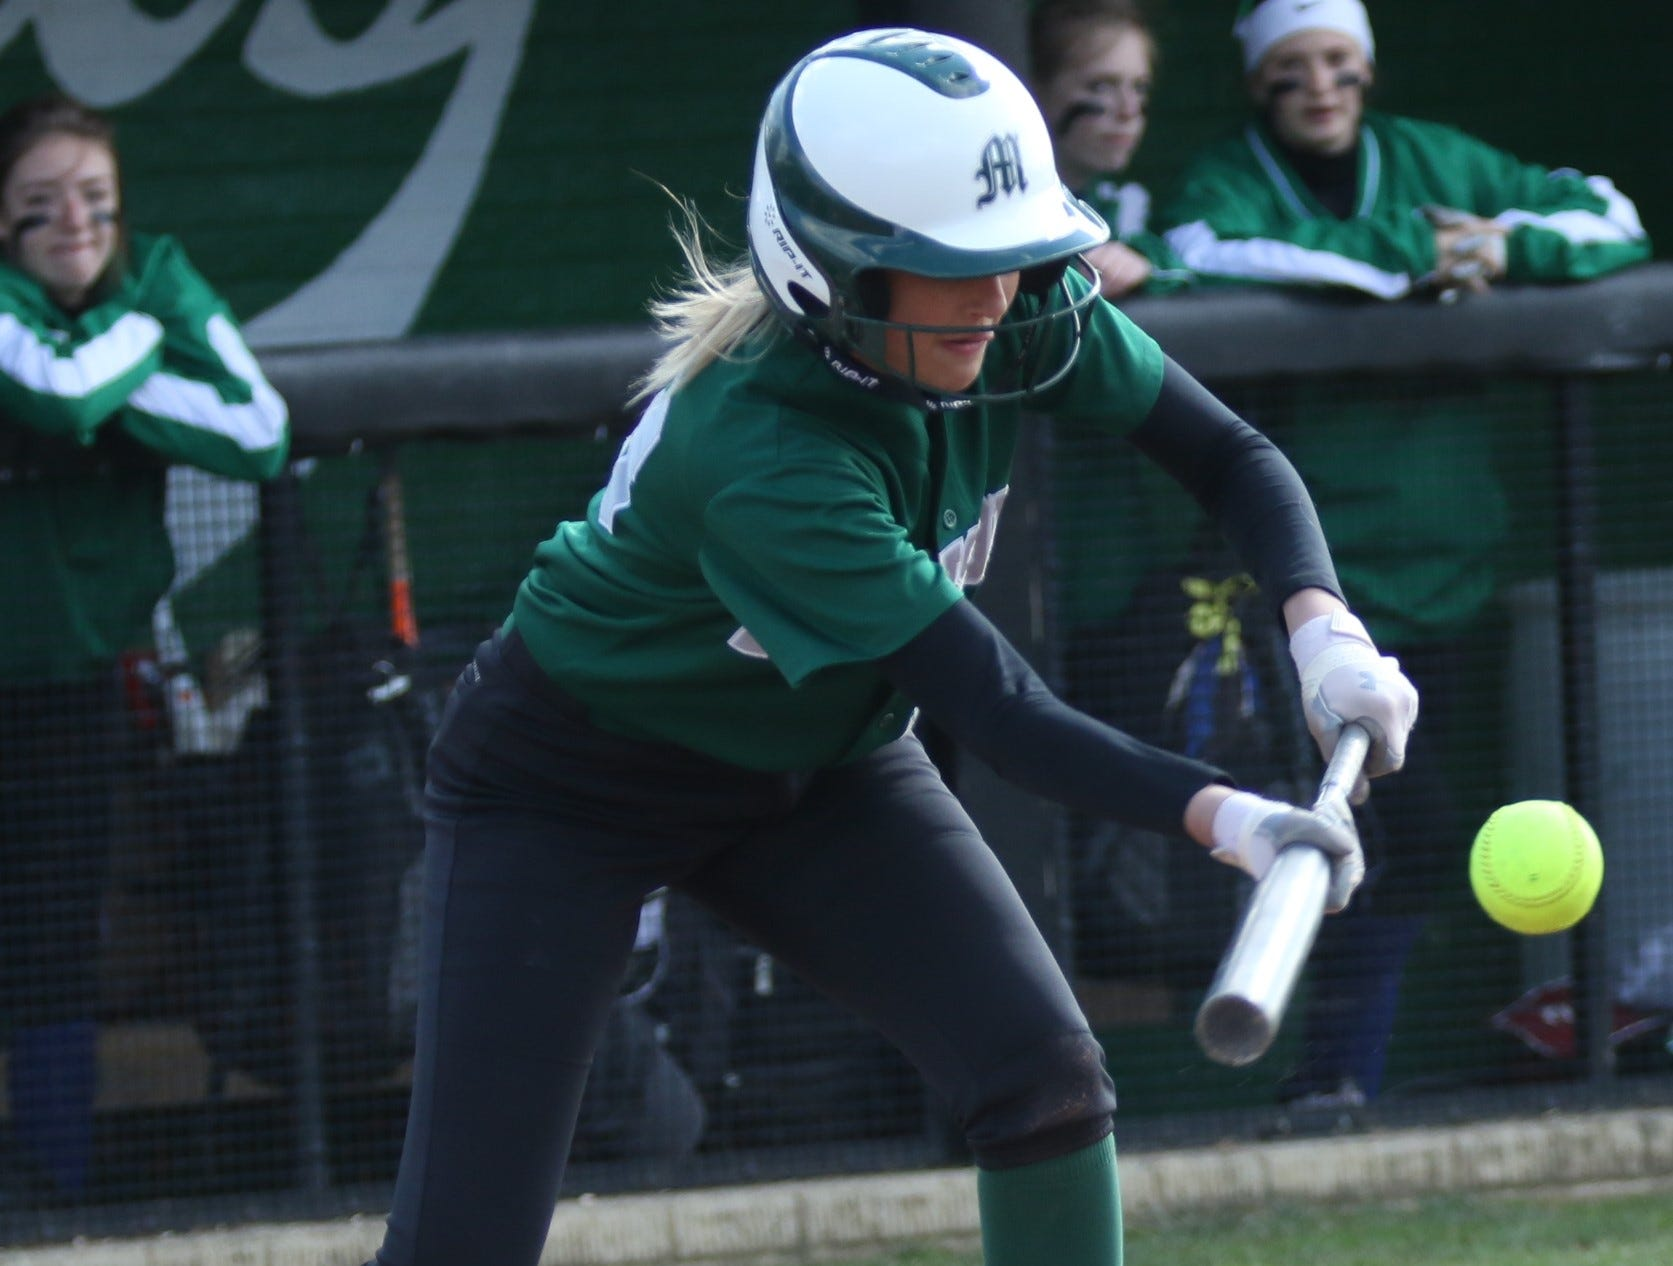 Since moving up to the No. 2 spot in the batting order, Madison's Paige Eldridge is 8-for-11 and spear-heading a 3-game winning streak for the Lady Rams.